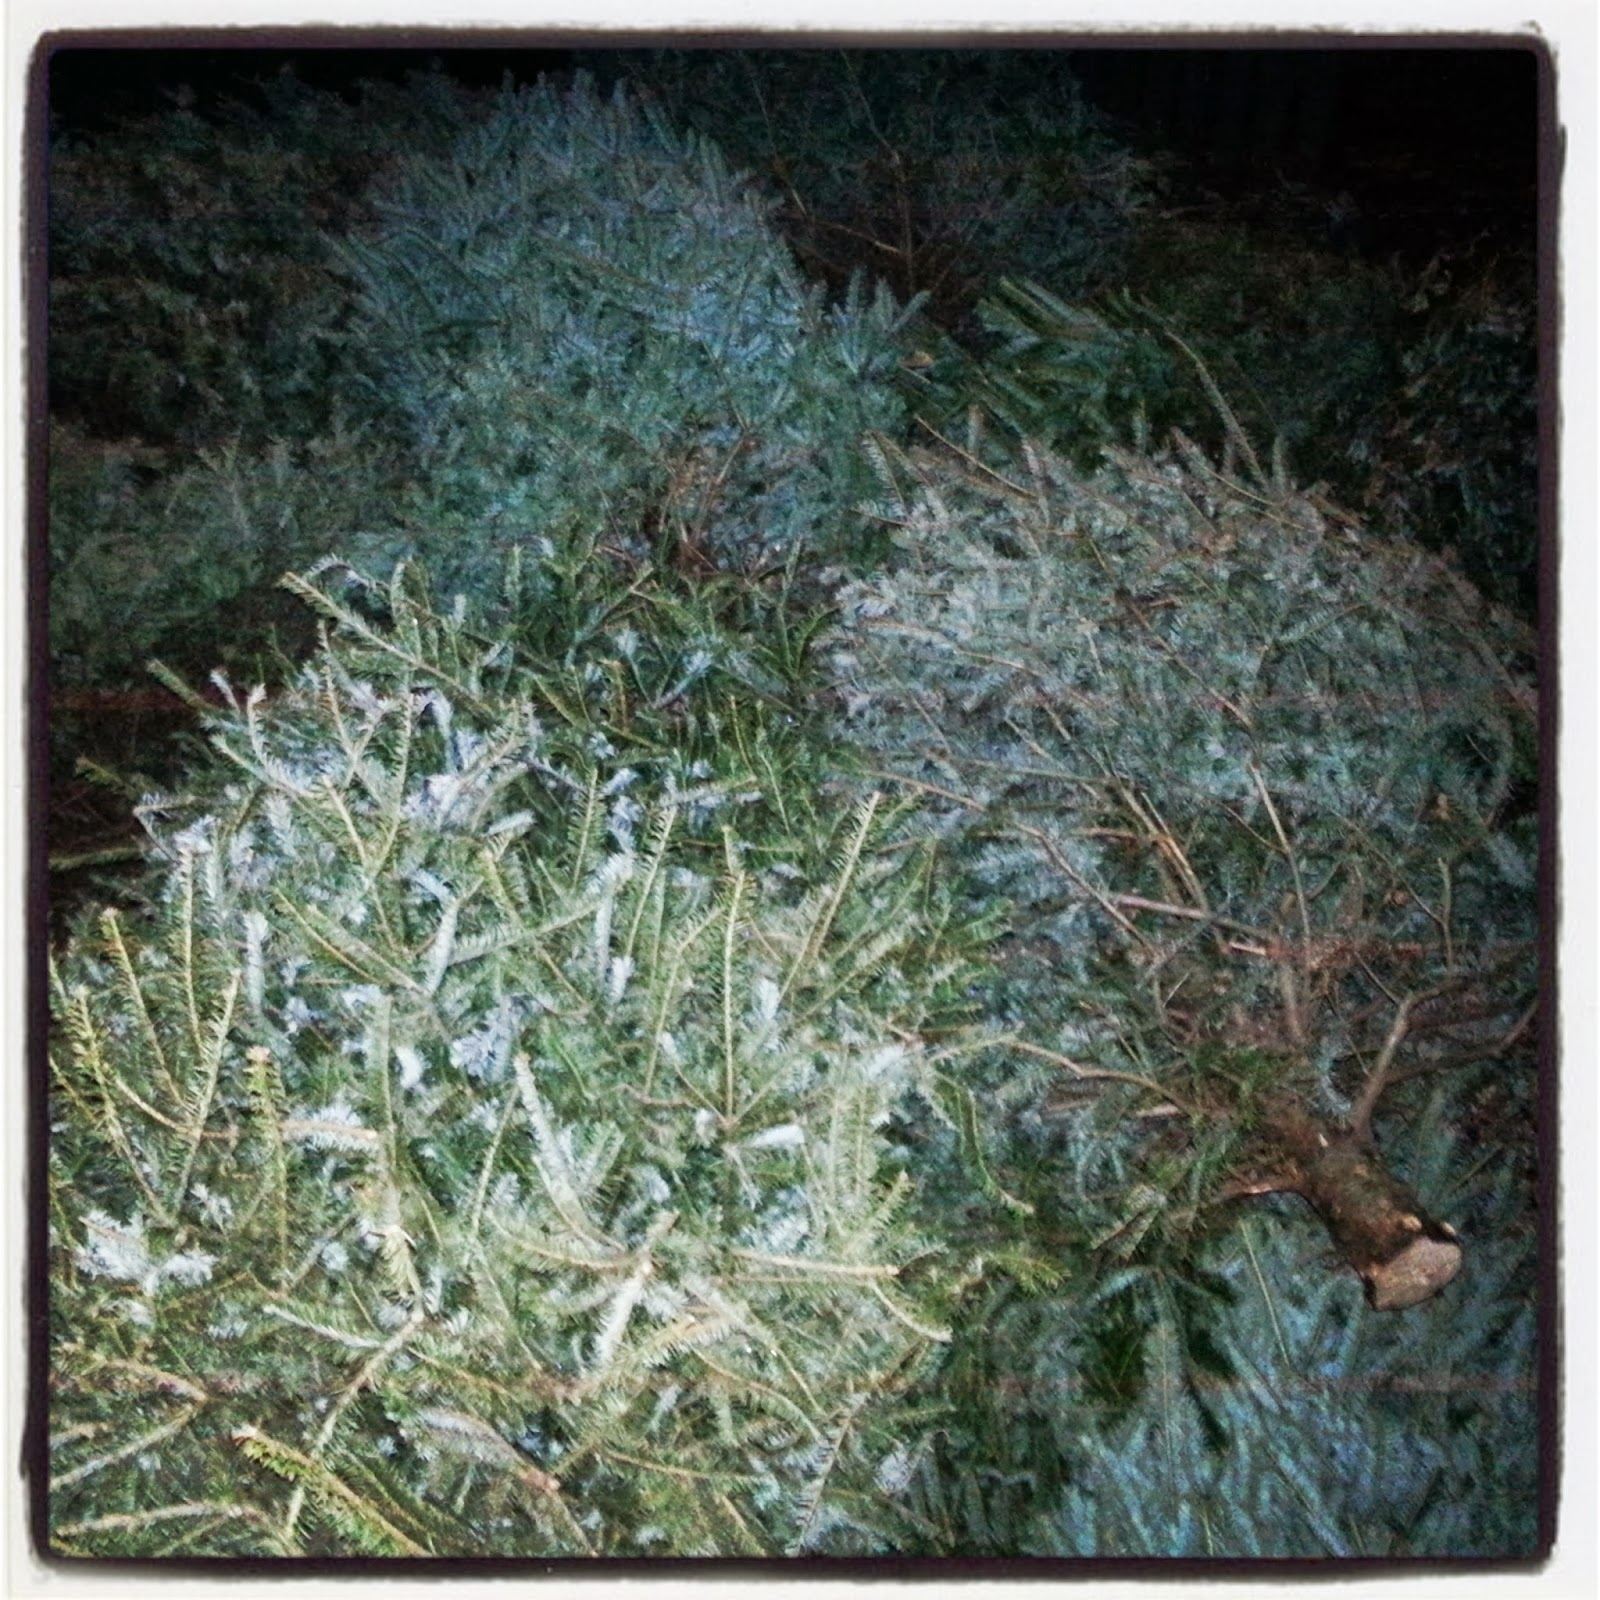 Disposing Of Christmas Trees: How Can I Responsibly Dispose Of My Christmas Tree?